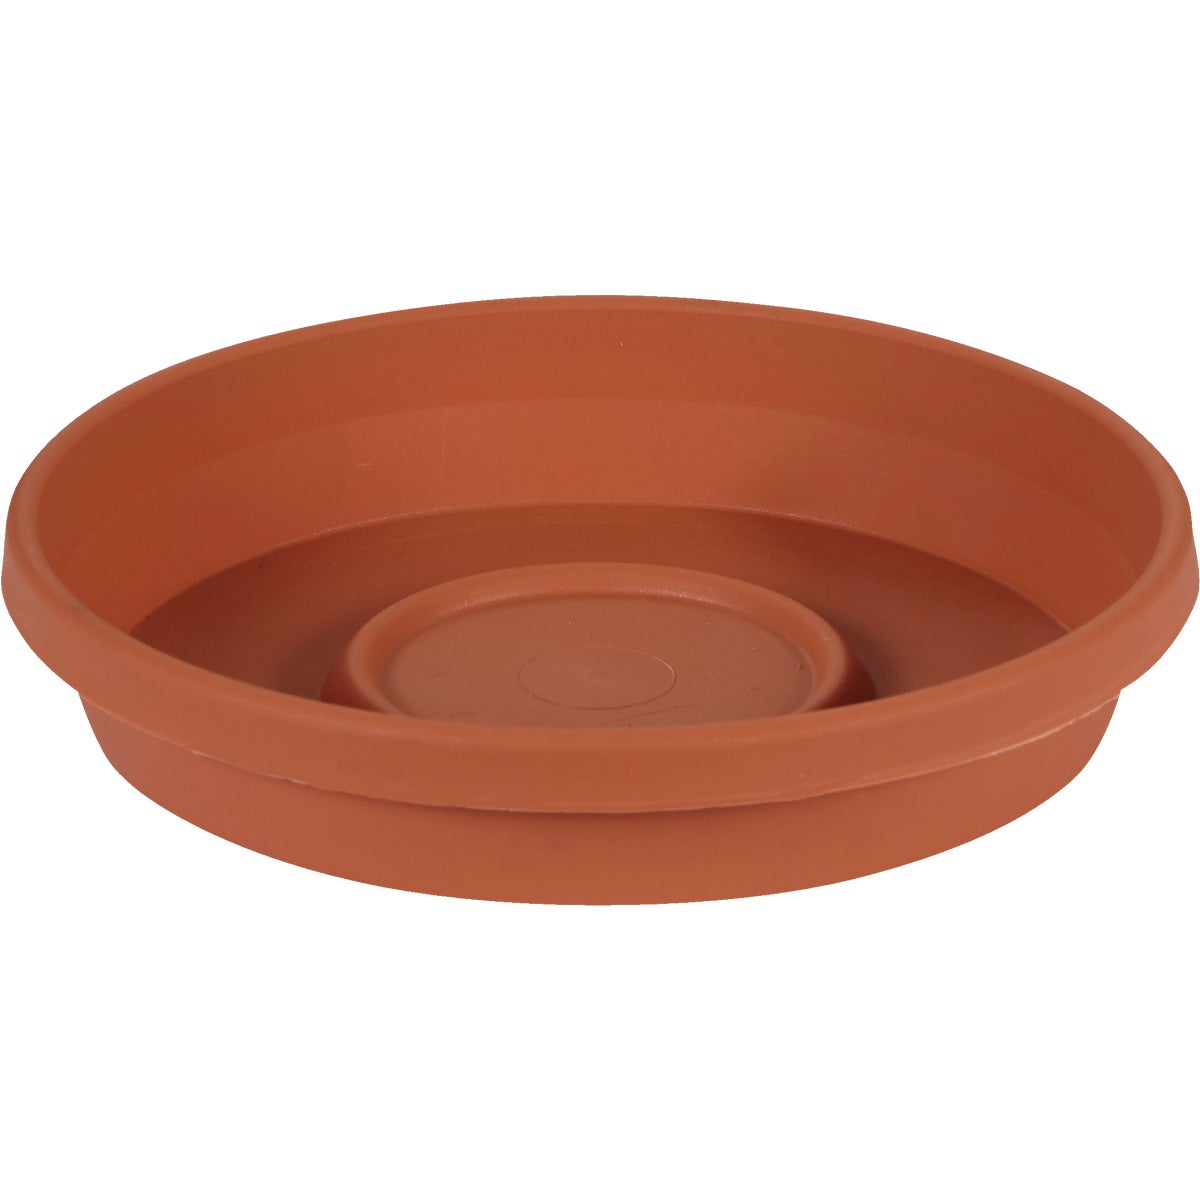 "14"" CLAY POLY SAUCER"